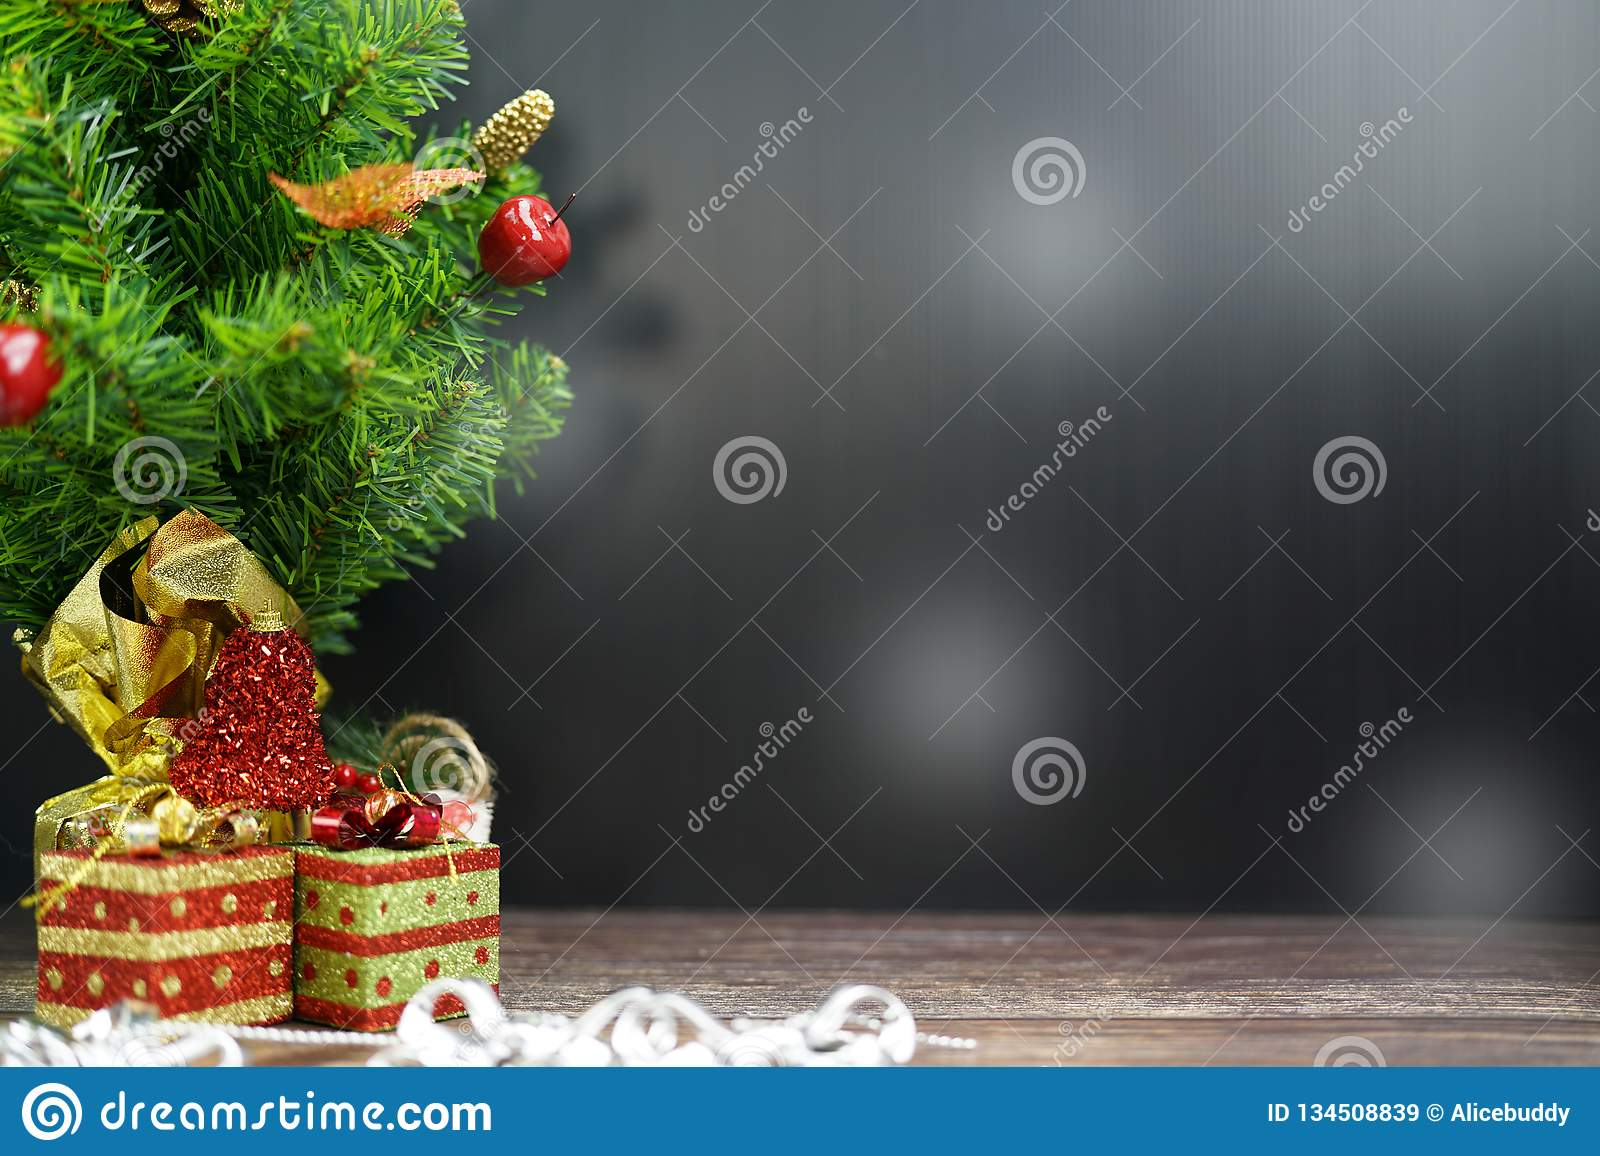 Christmas Tree with Gifts, on black background